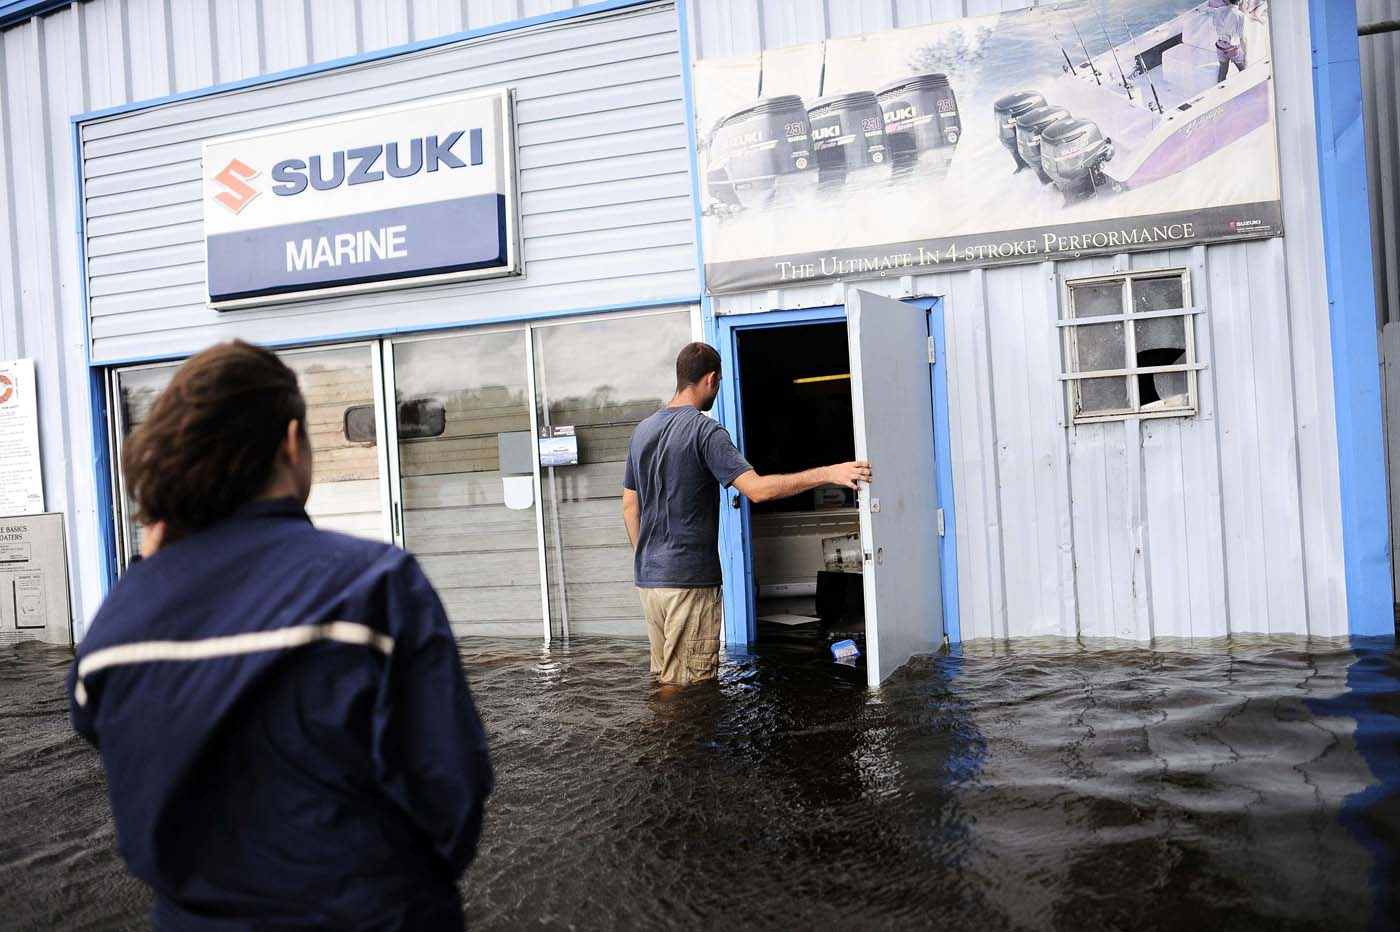 Eric Mylin and his girlfriend Misty Burk walk through his flooded business, the Magic Manatee Marina, as they inspect the damage caused by water associated with Tropical Storm Debby in Homosassa, Florida, June 26, 2012. (Brian Blanco/Reuters)